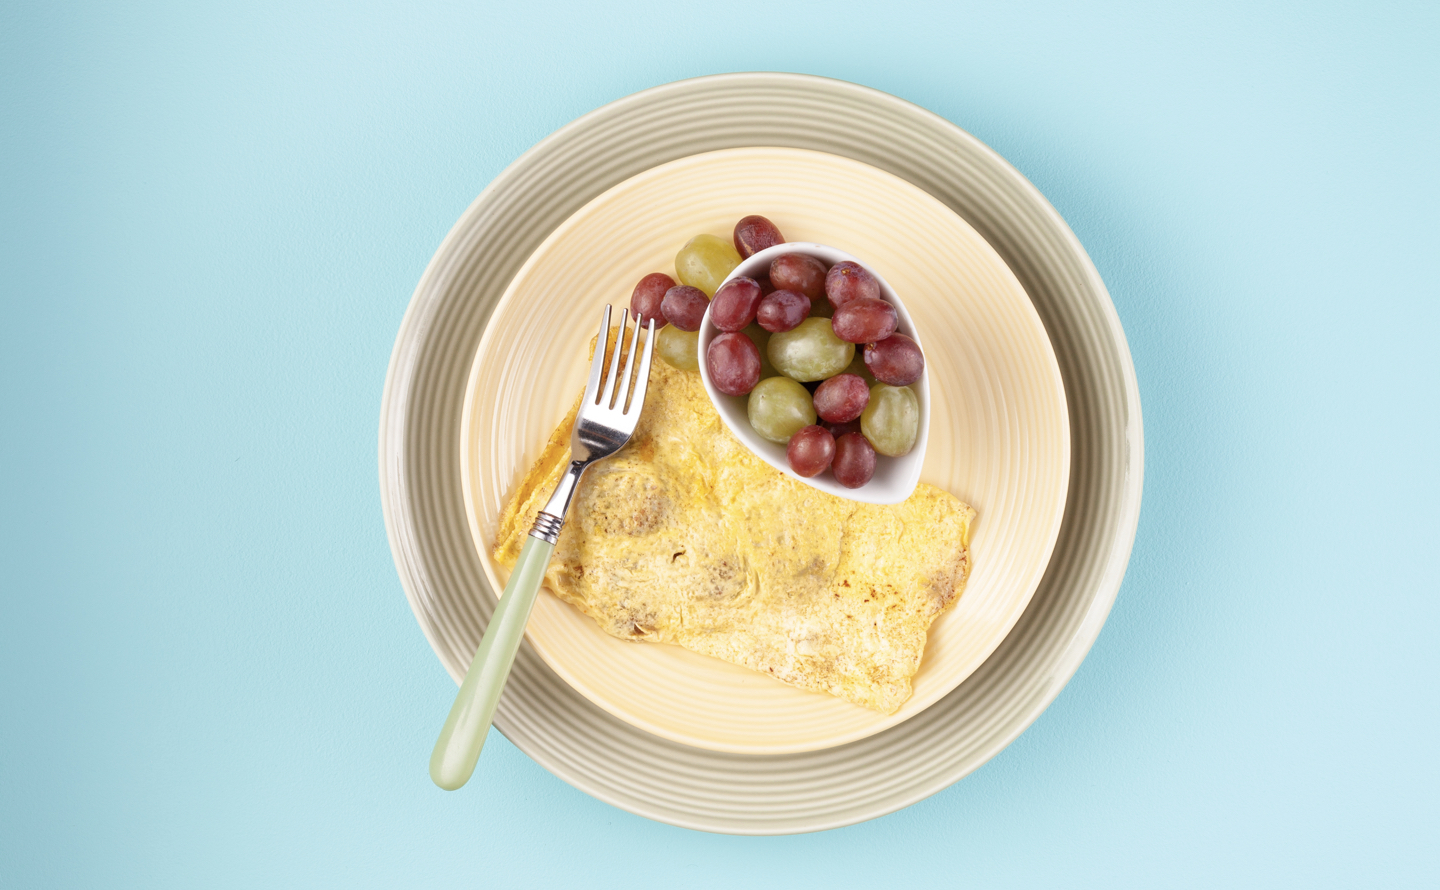 Veggie Sausage Cheddar Omelette with Fruit